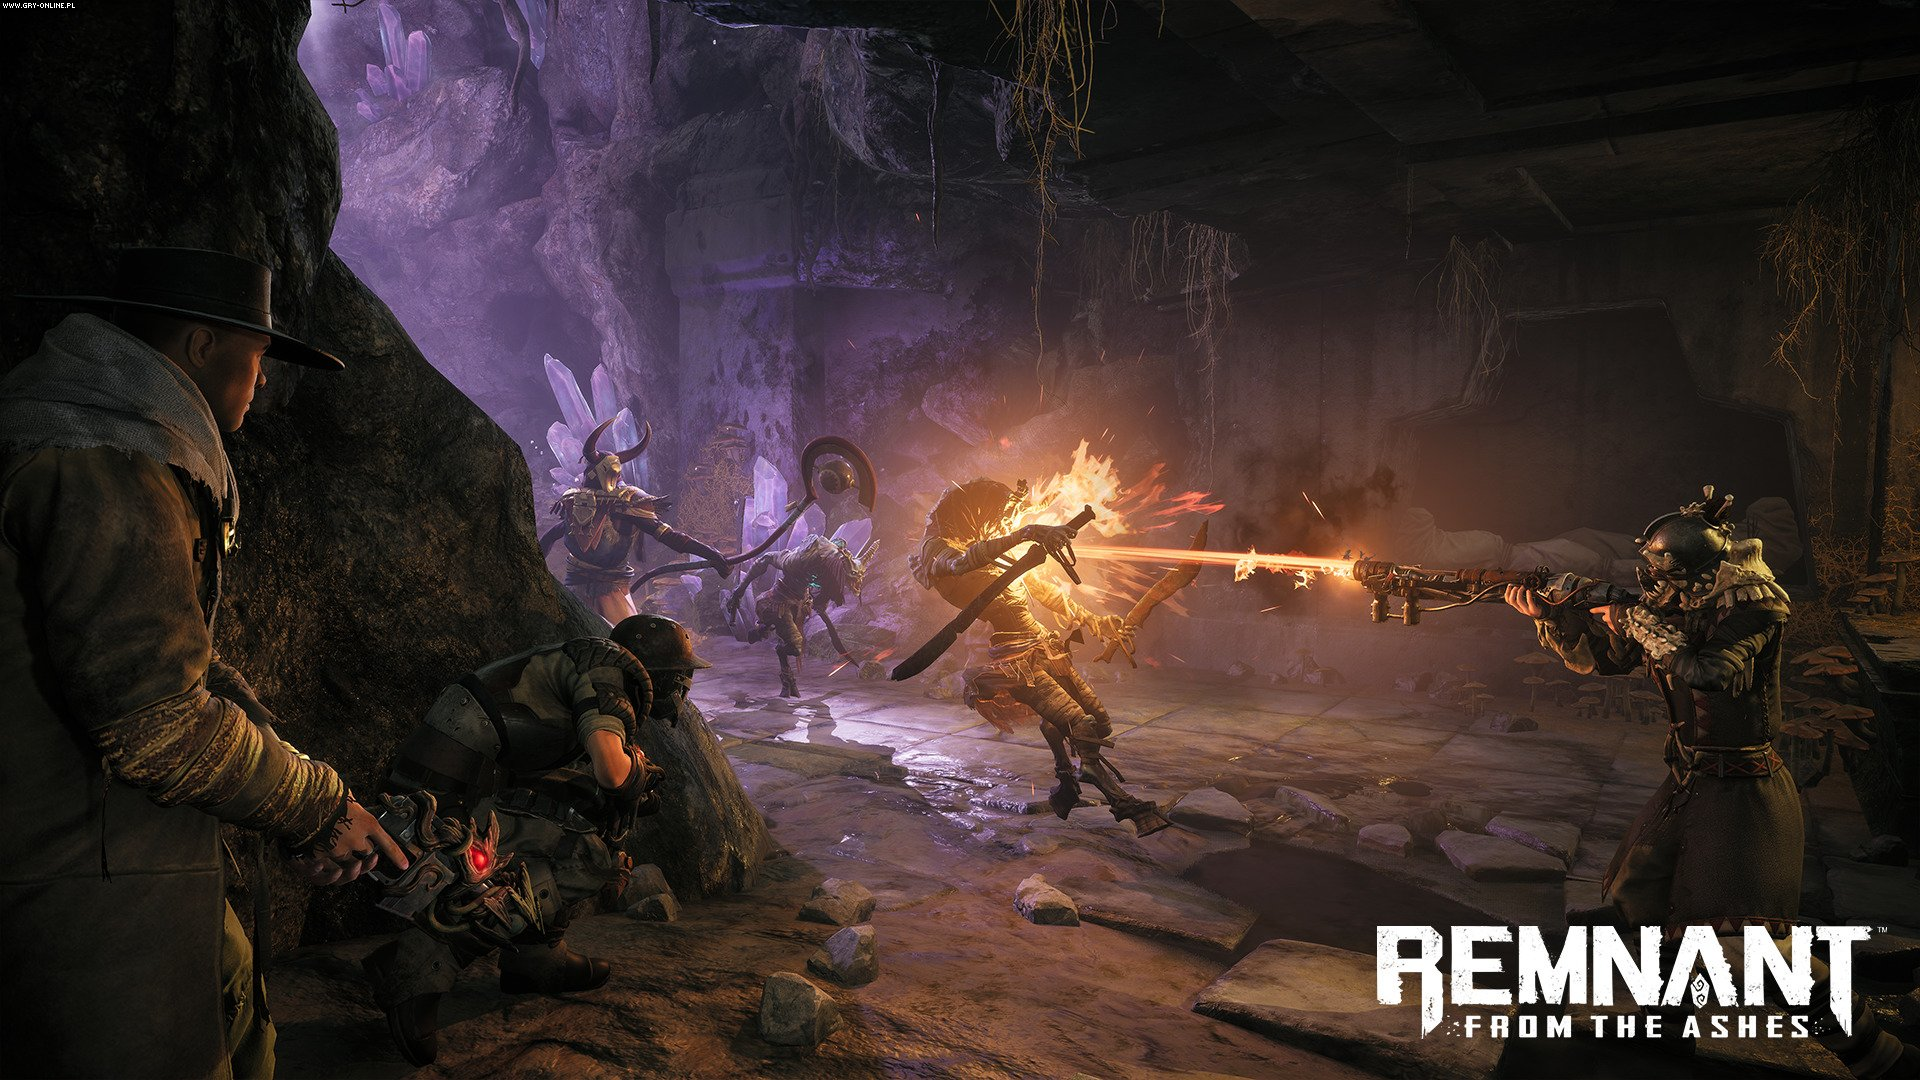 Remnant: From the Ashes PC, PS4, XONE Games Image 4/21, Gunfire Games, Perfect World Entertainment